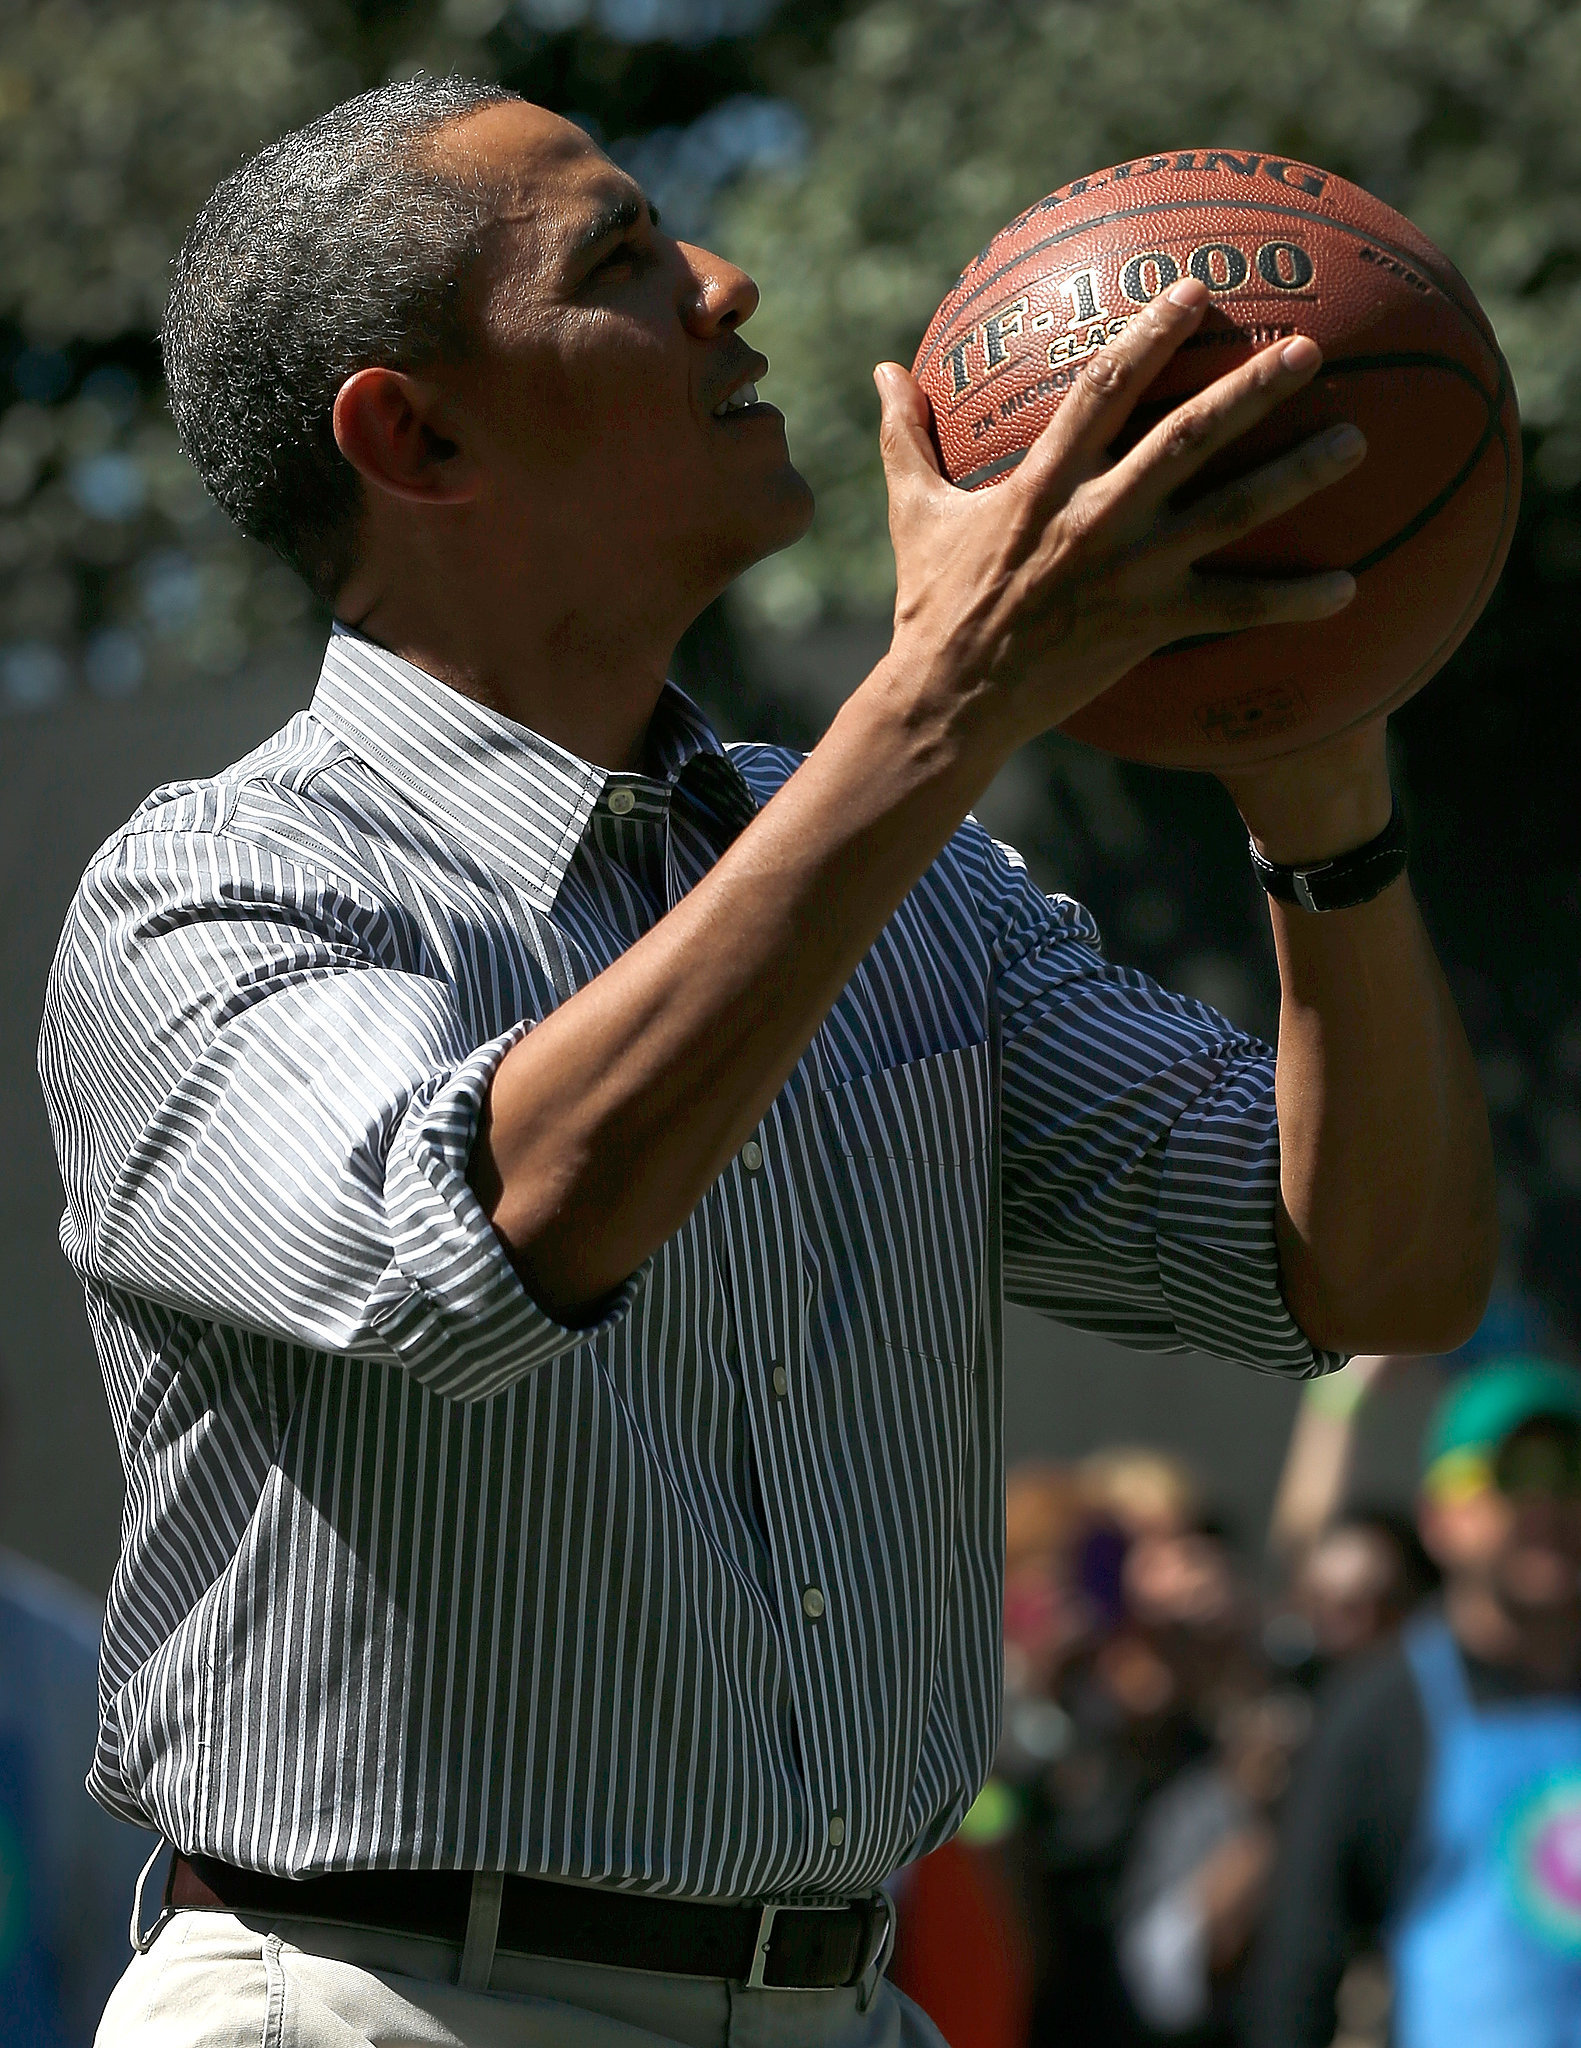 Mr. President also snuck in some hoops time.